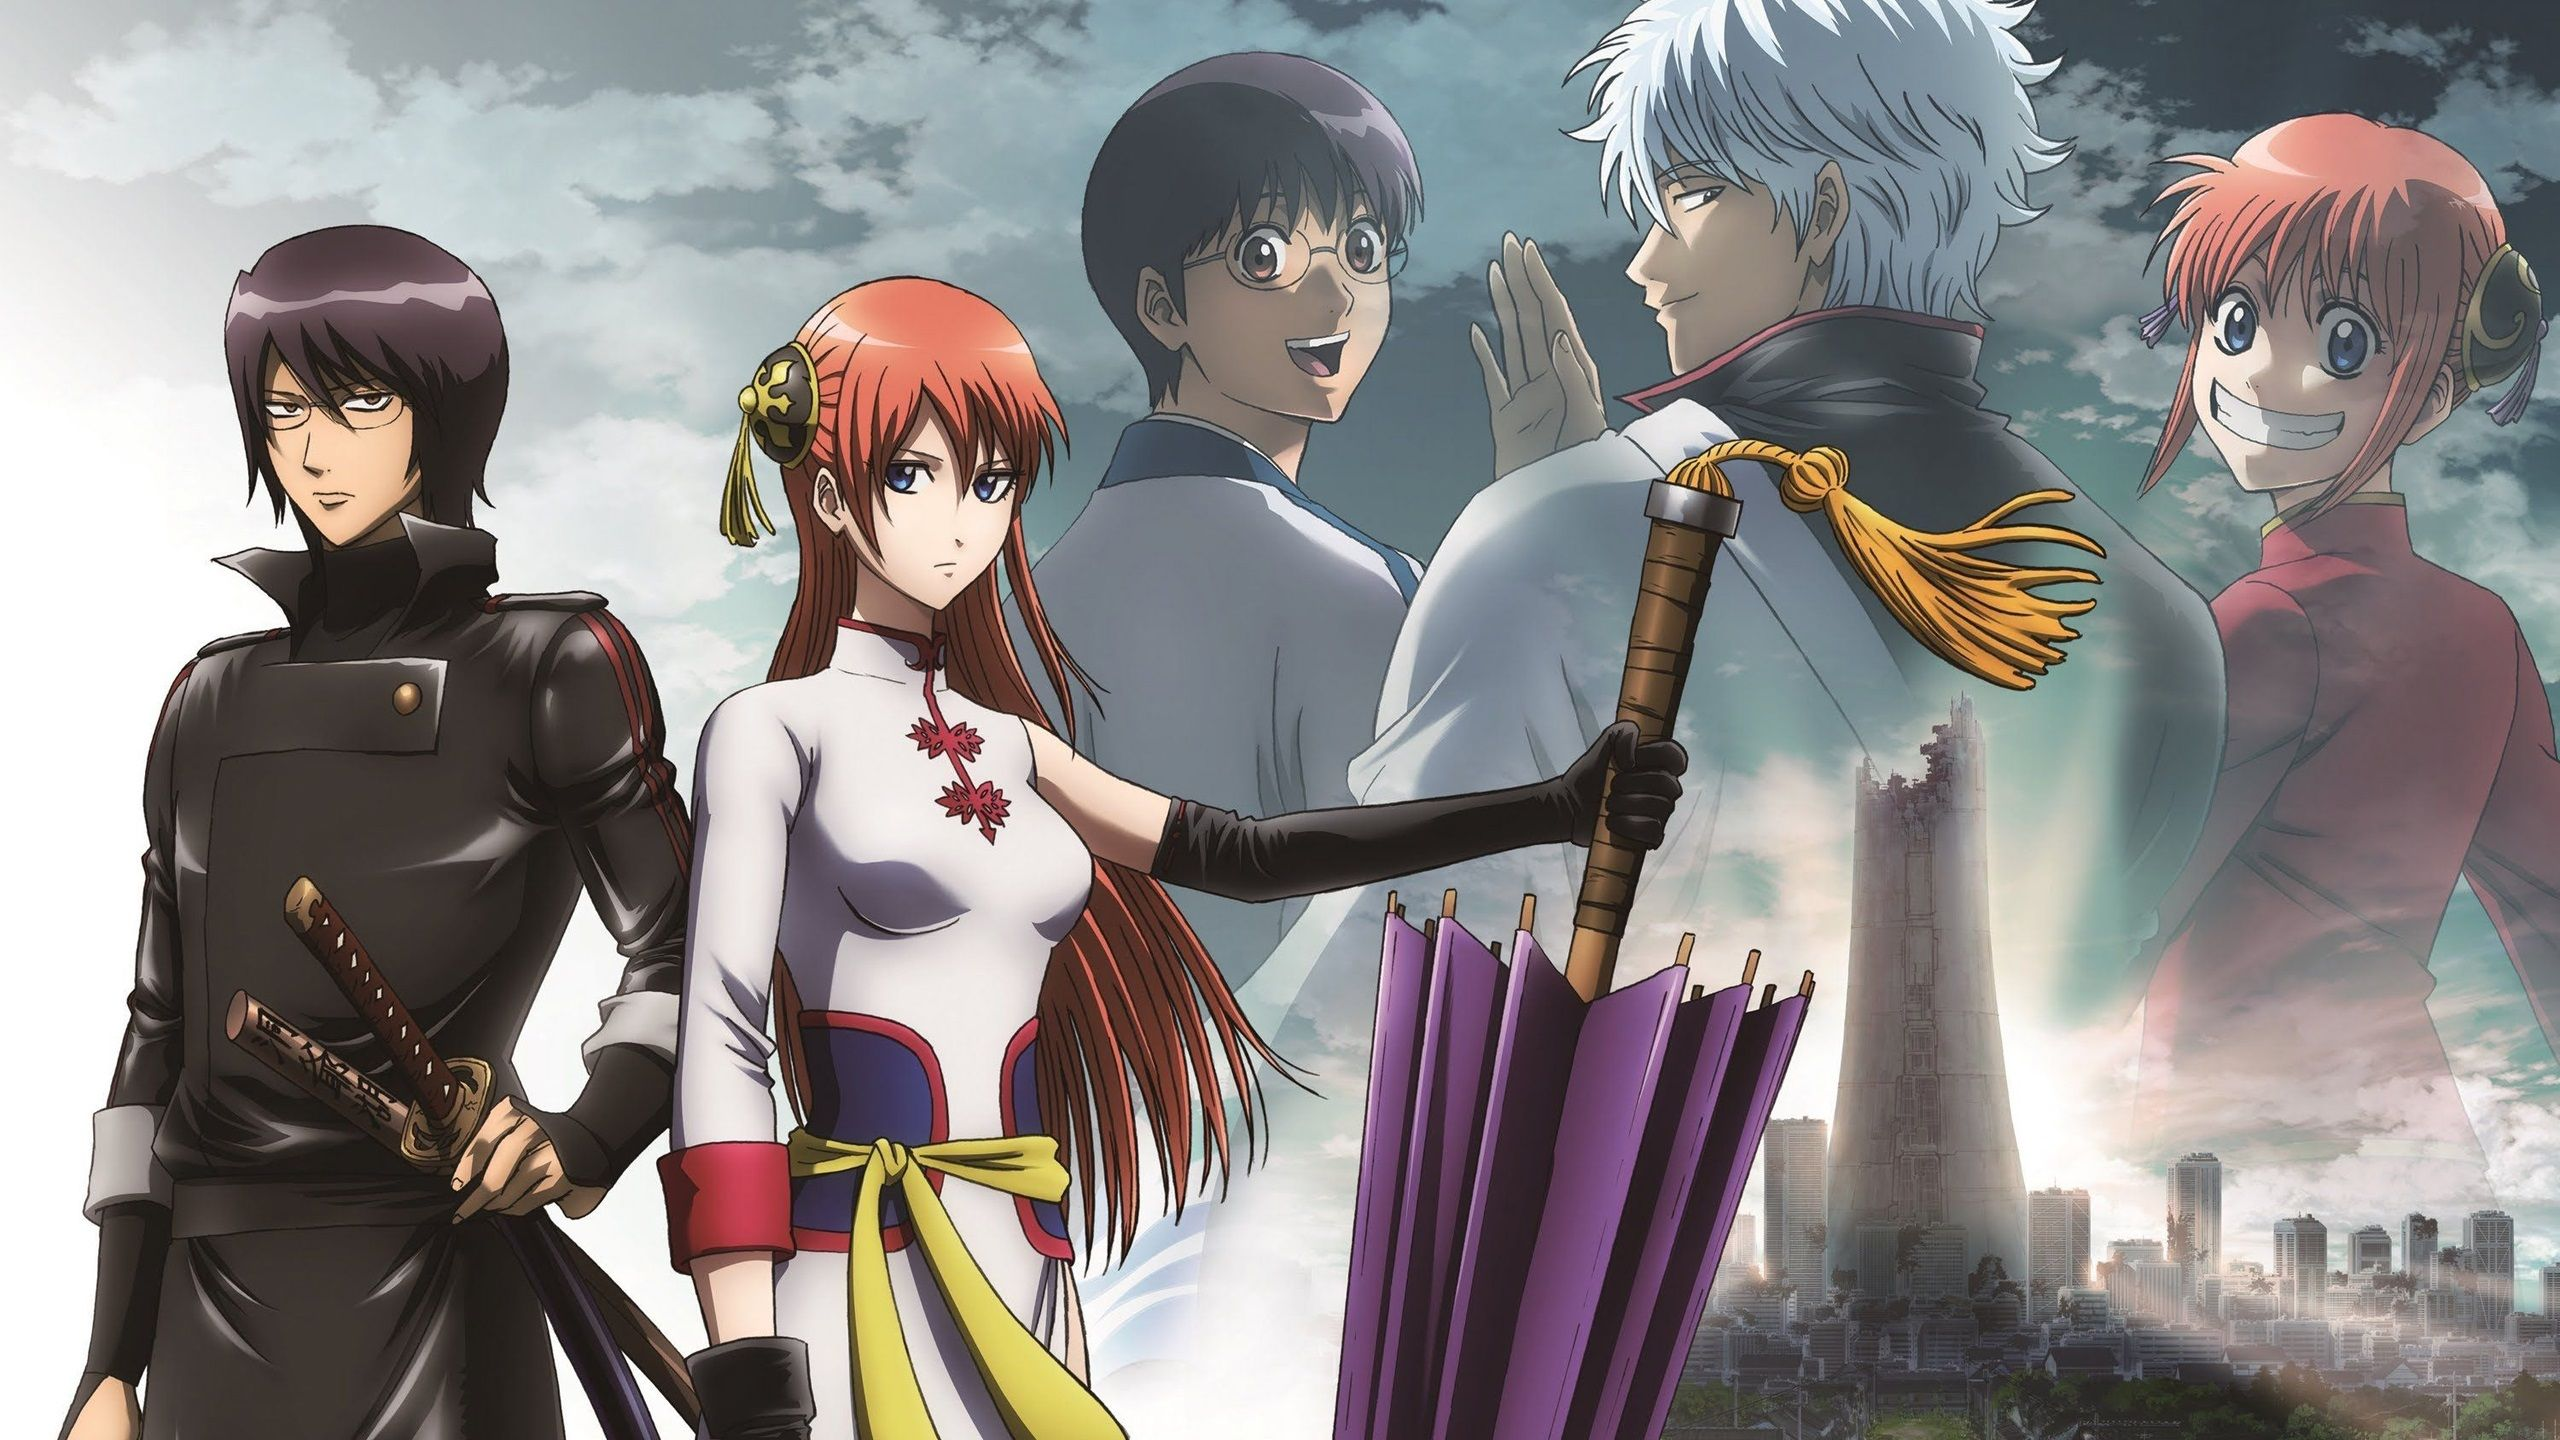 Image result for gintama wallpaper キャラクターデザイン, アニメ, Pc 壁紙